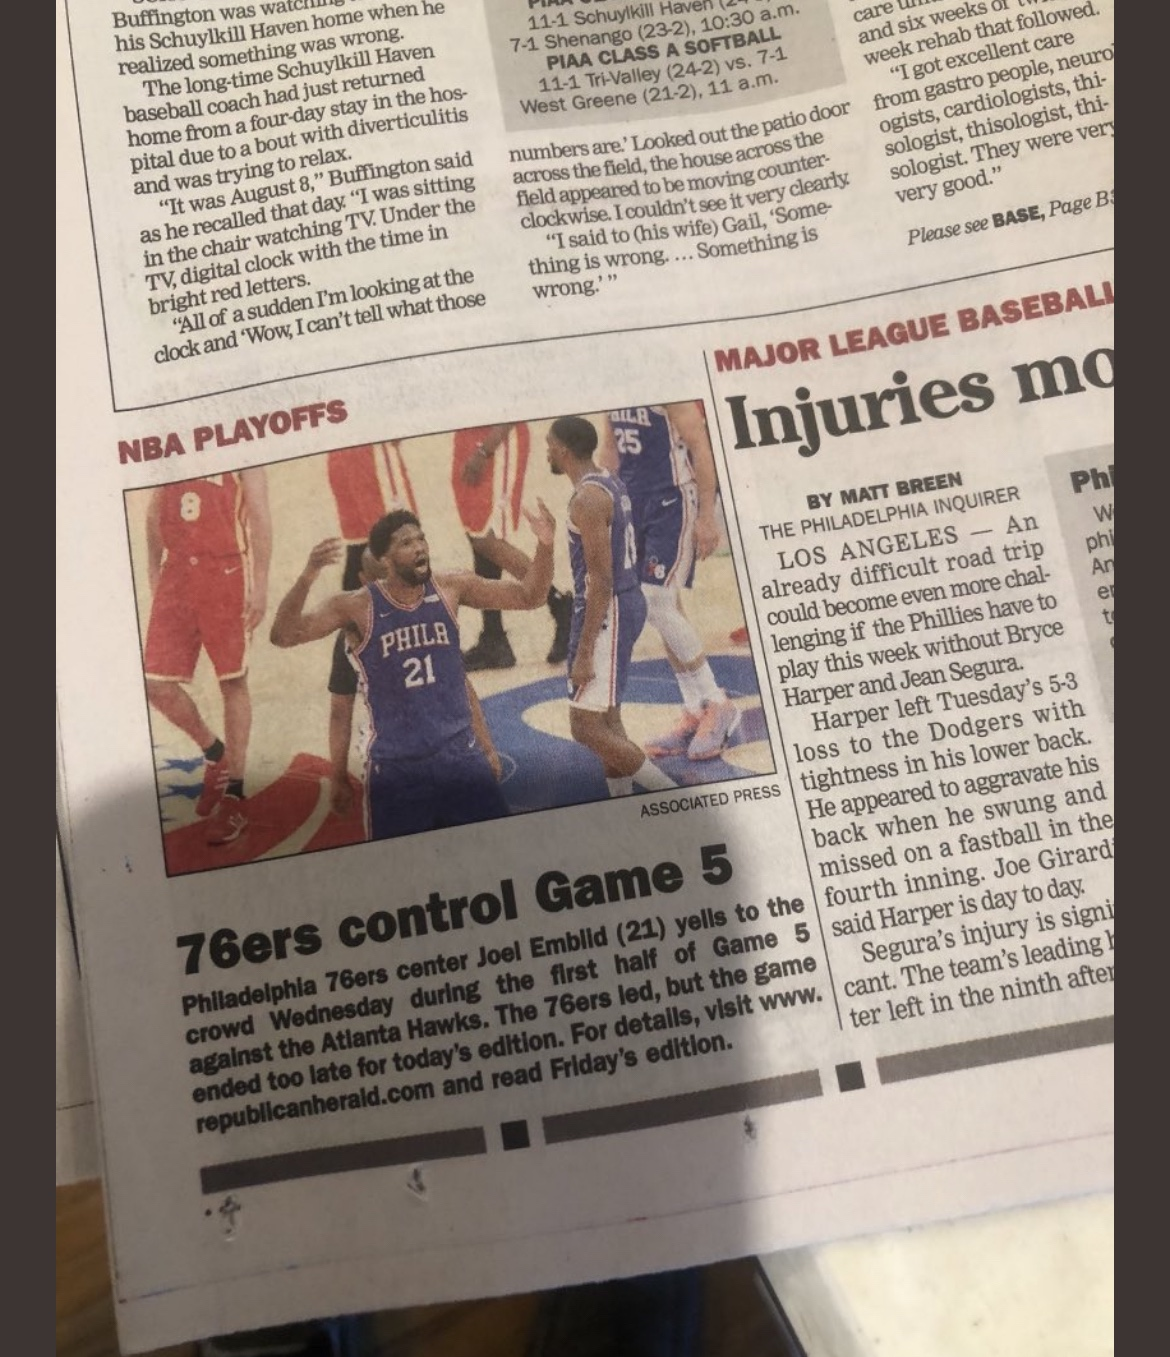 Republican Herald @repherald Too Old To Care About The End Of The Sixers Game